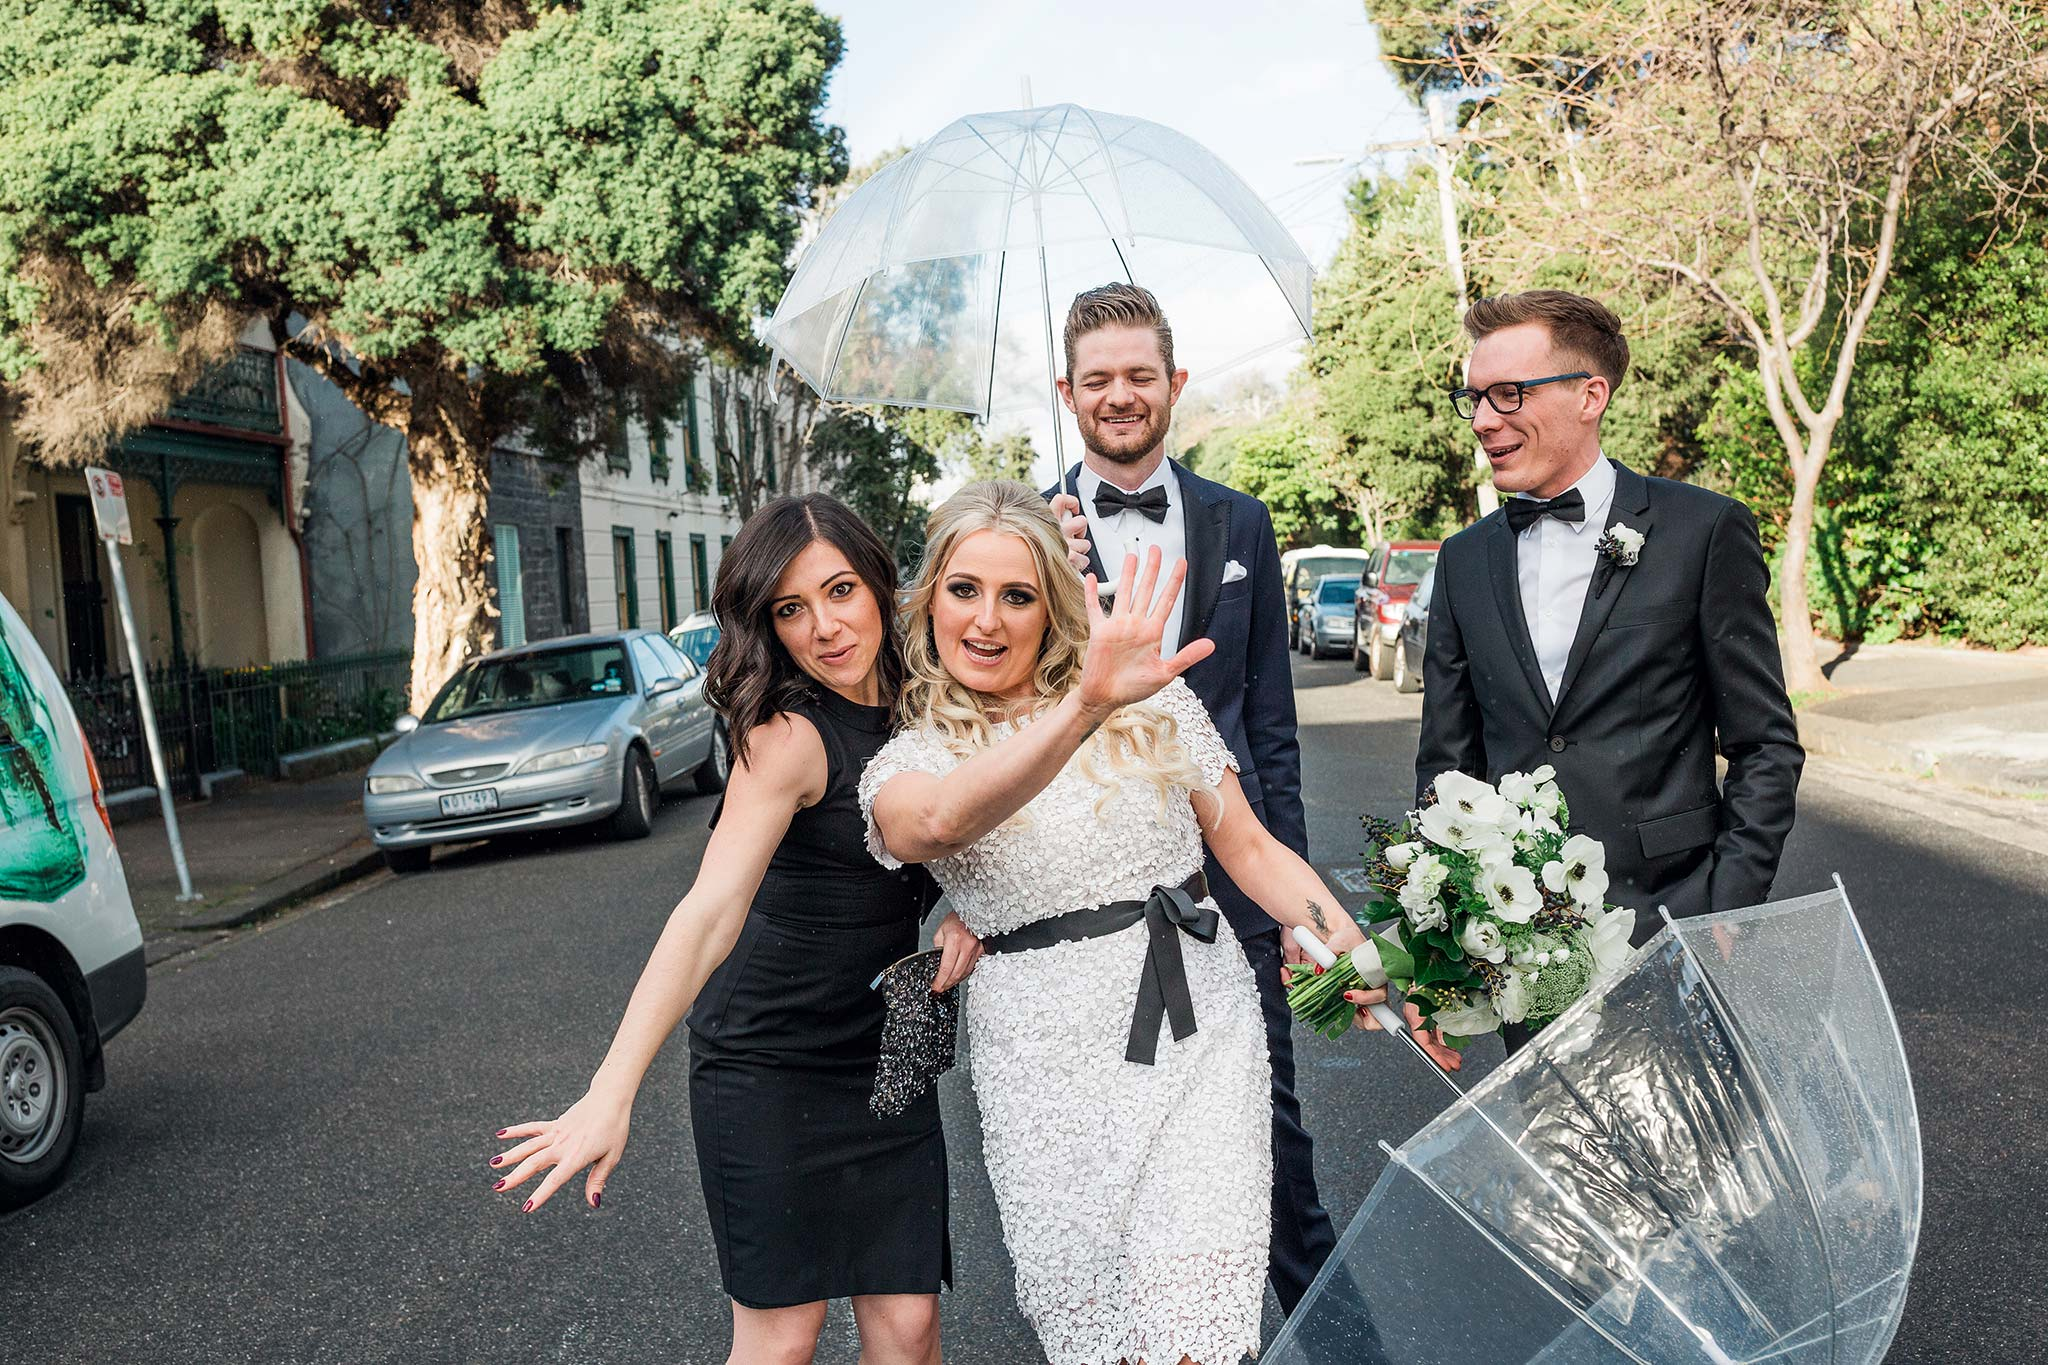 melbourne-fitzroy-st-andrews-conservatory-pumphouse-wedding-venue-ceremony-bridal-party